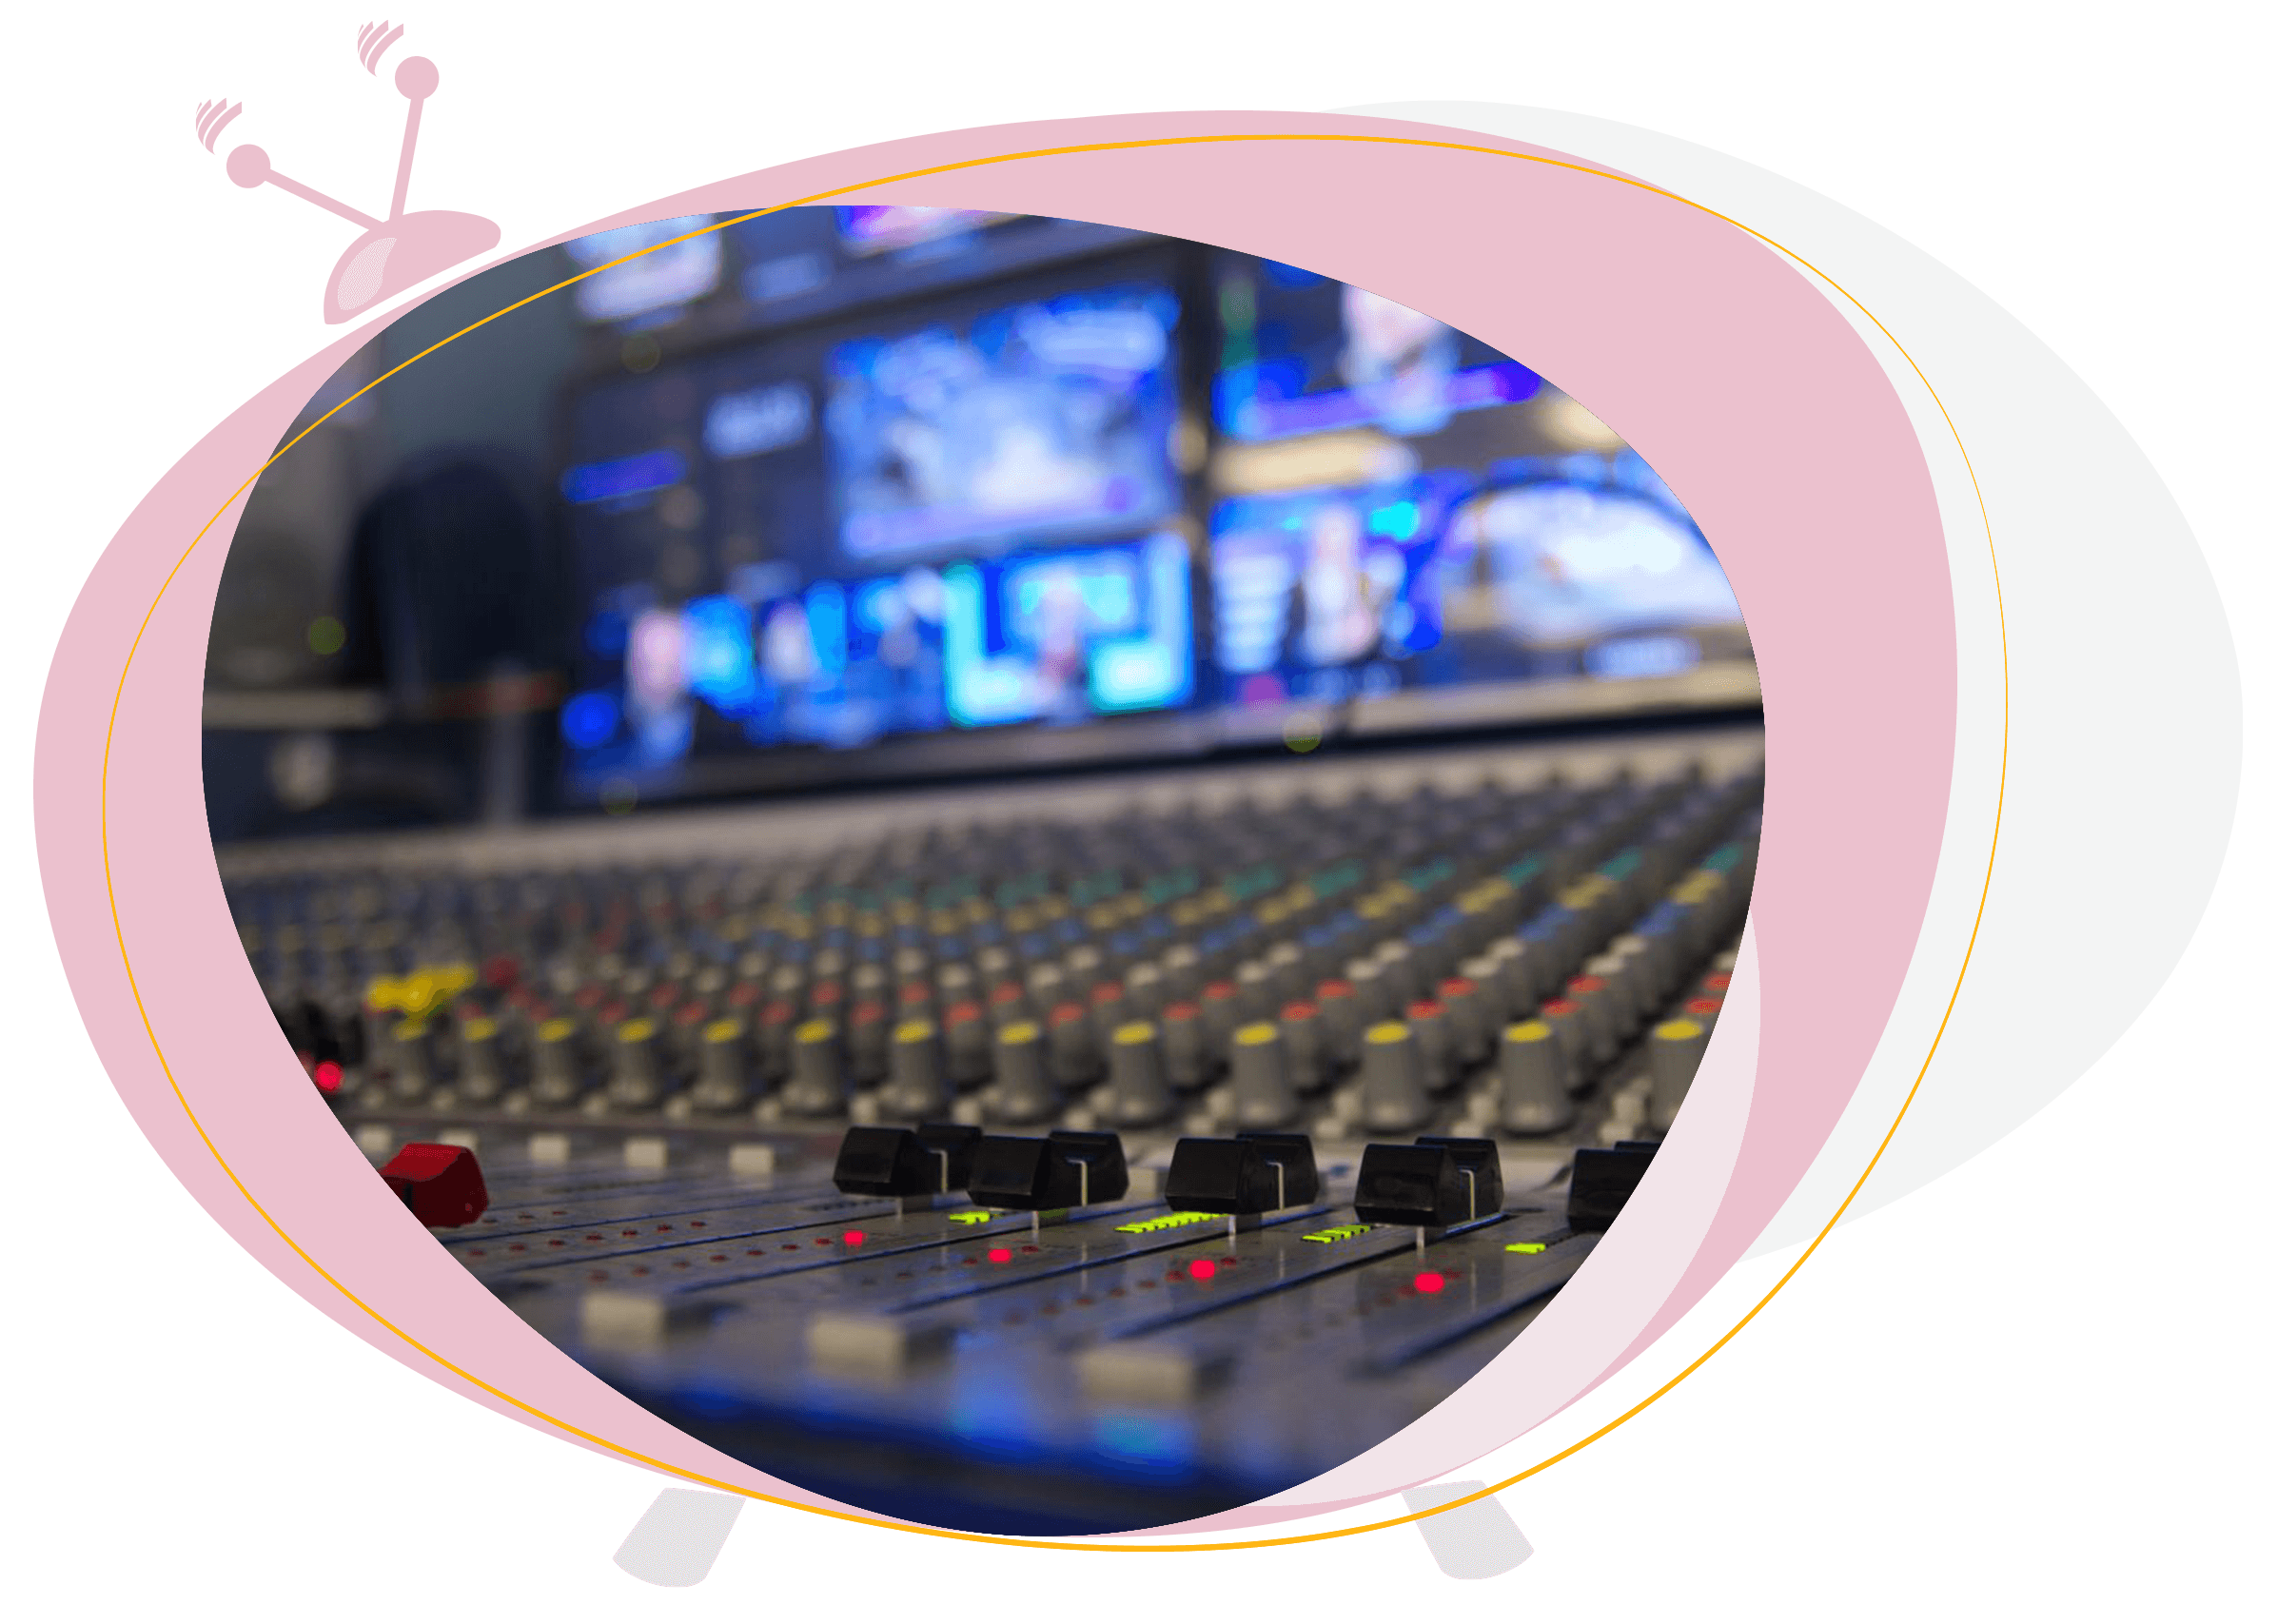 Provys - Integrated software solution for broadcasting organisations